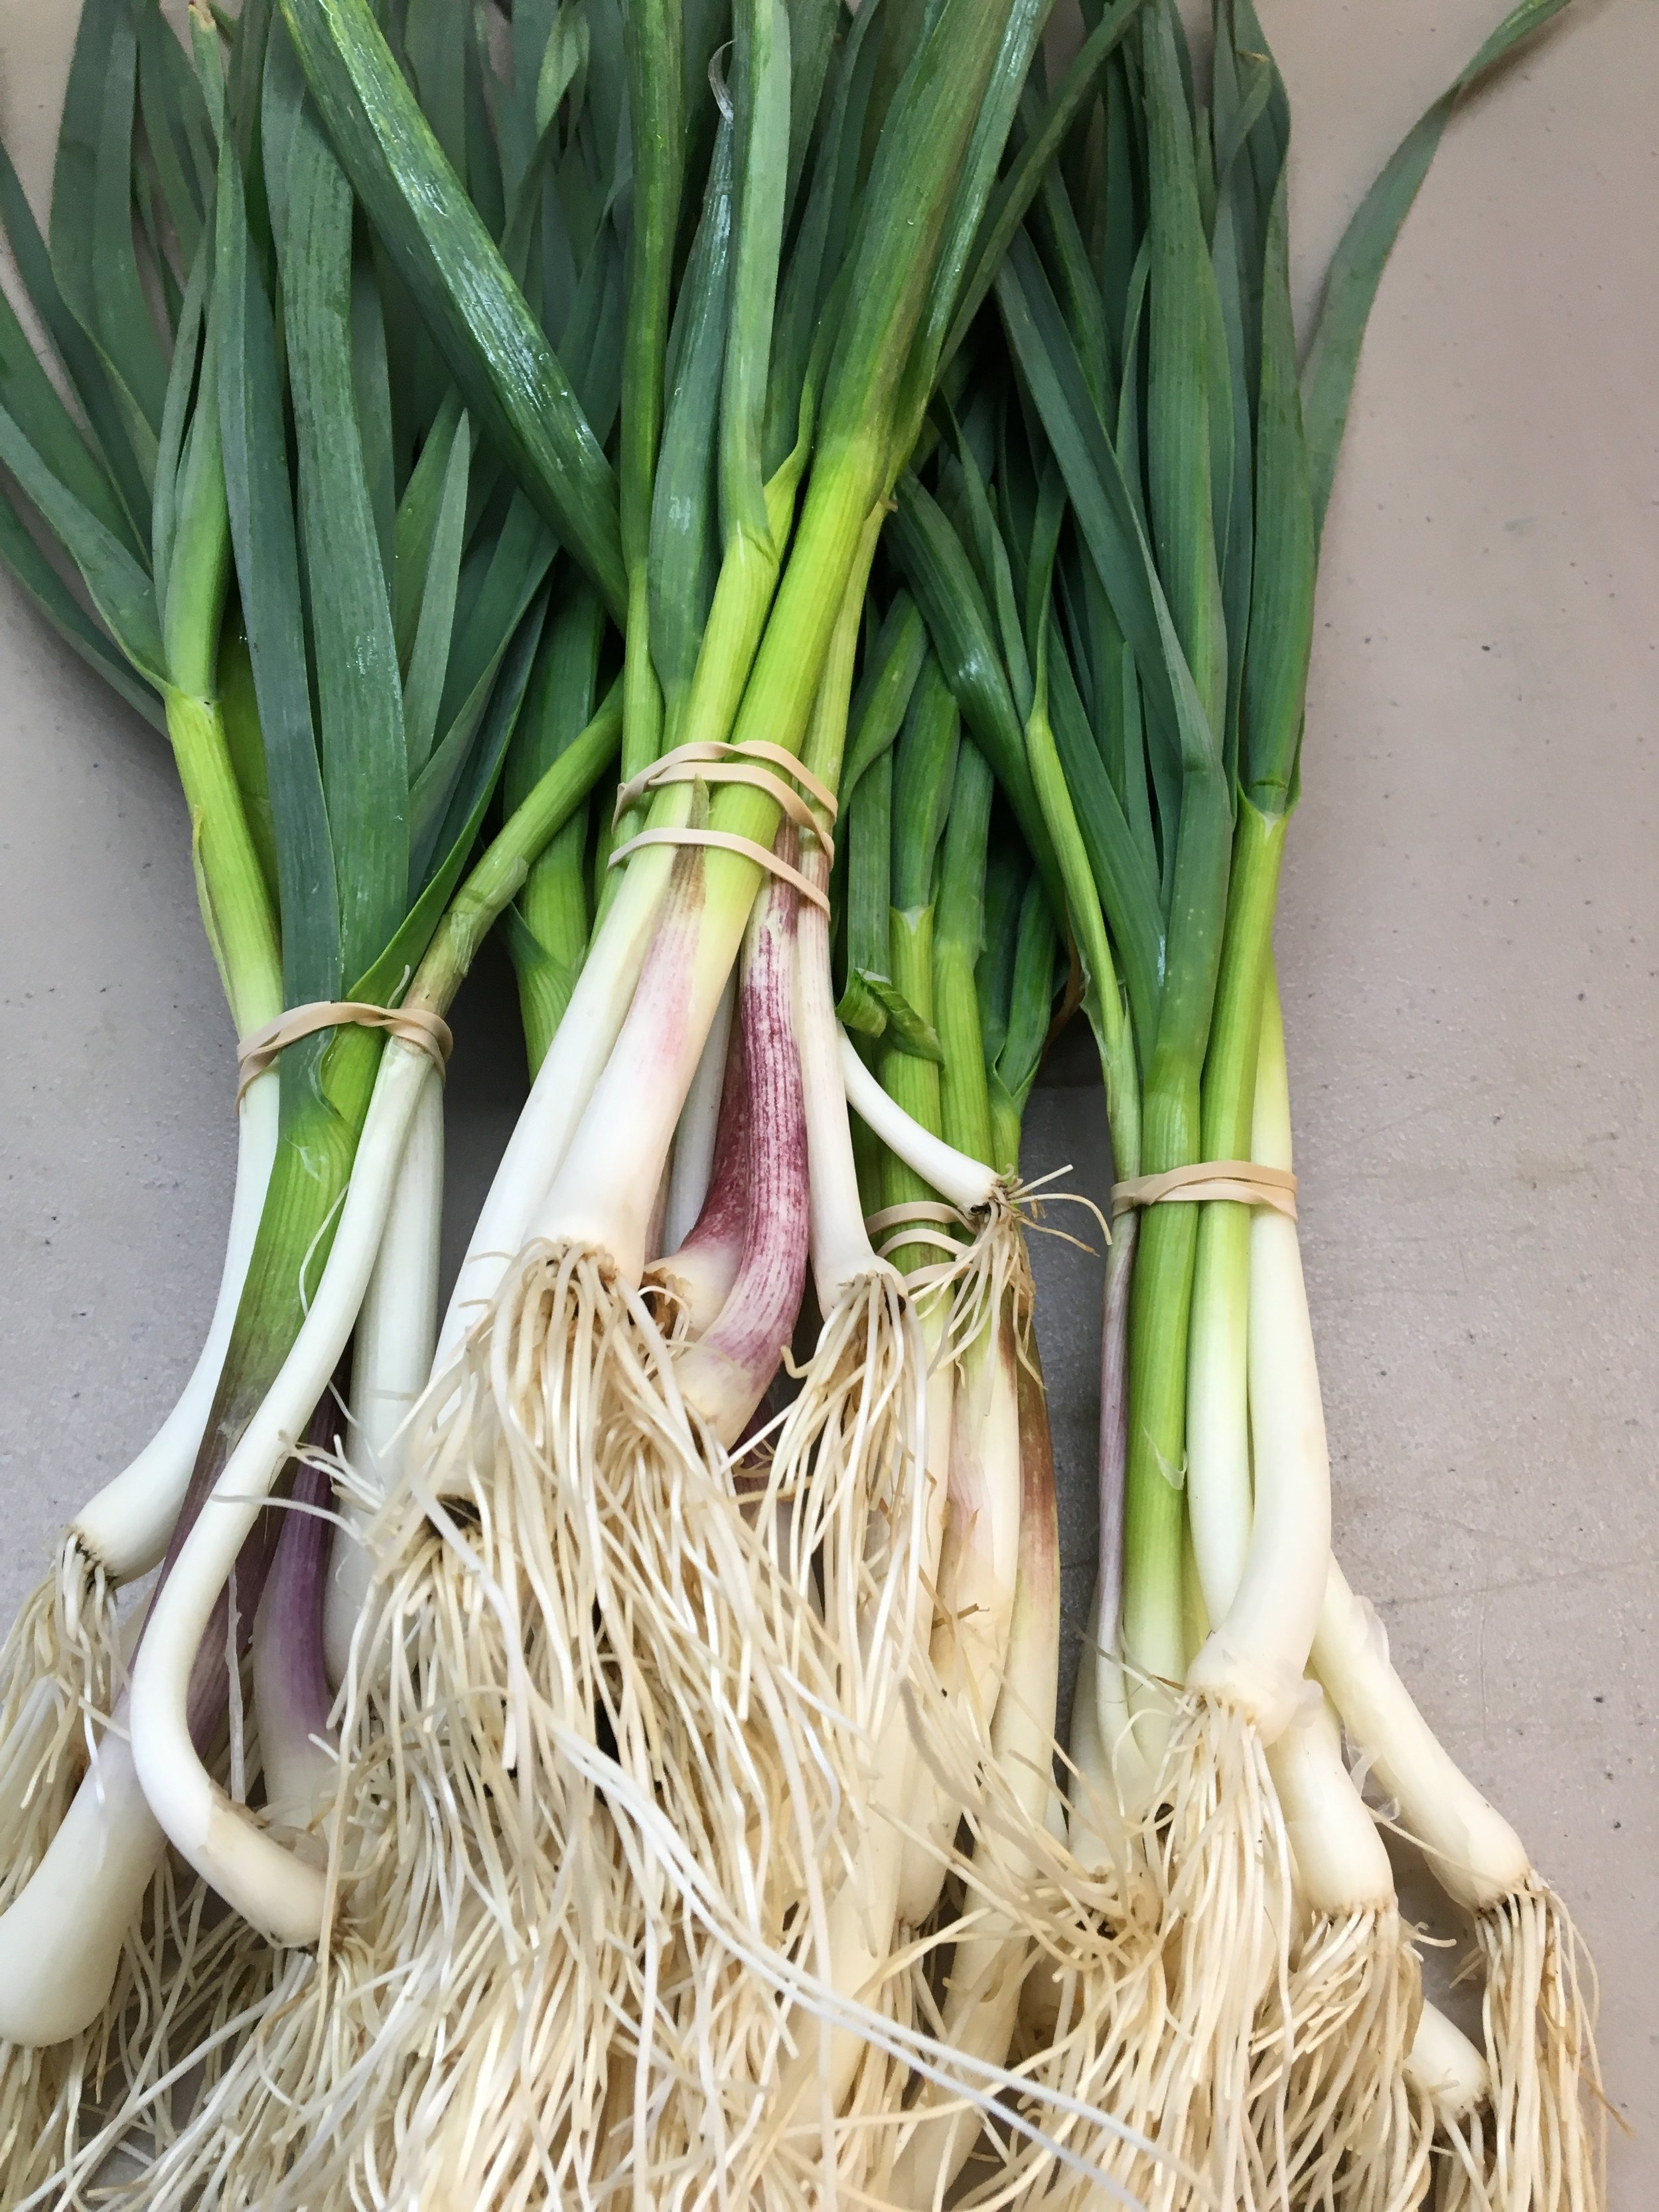 Dax Funderburk - Green garlic scalions .JPG